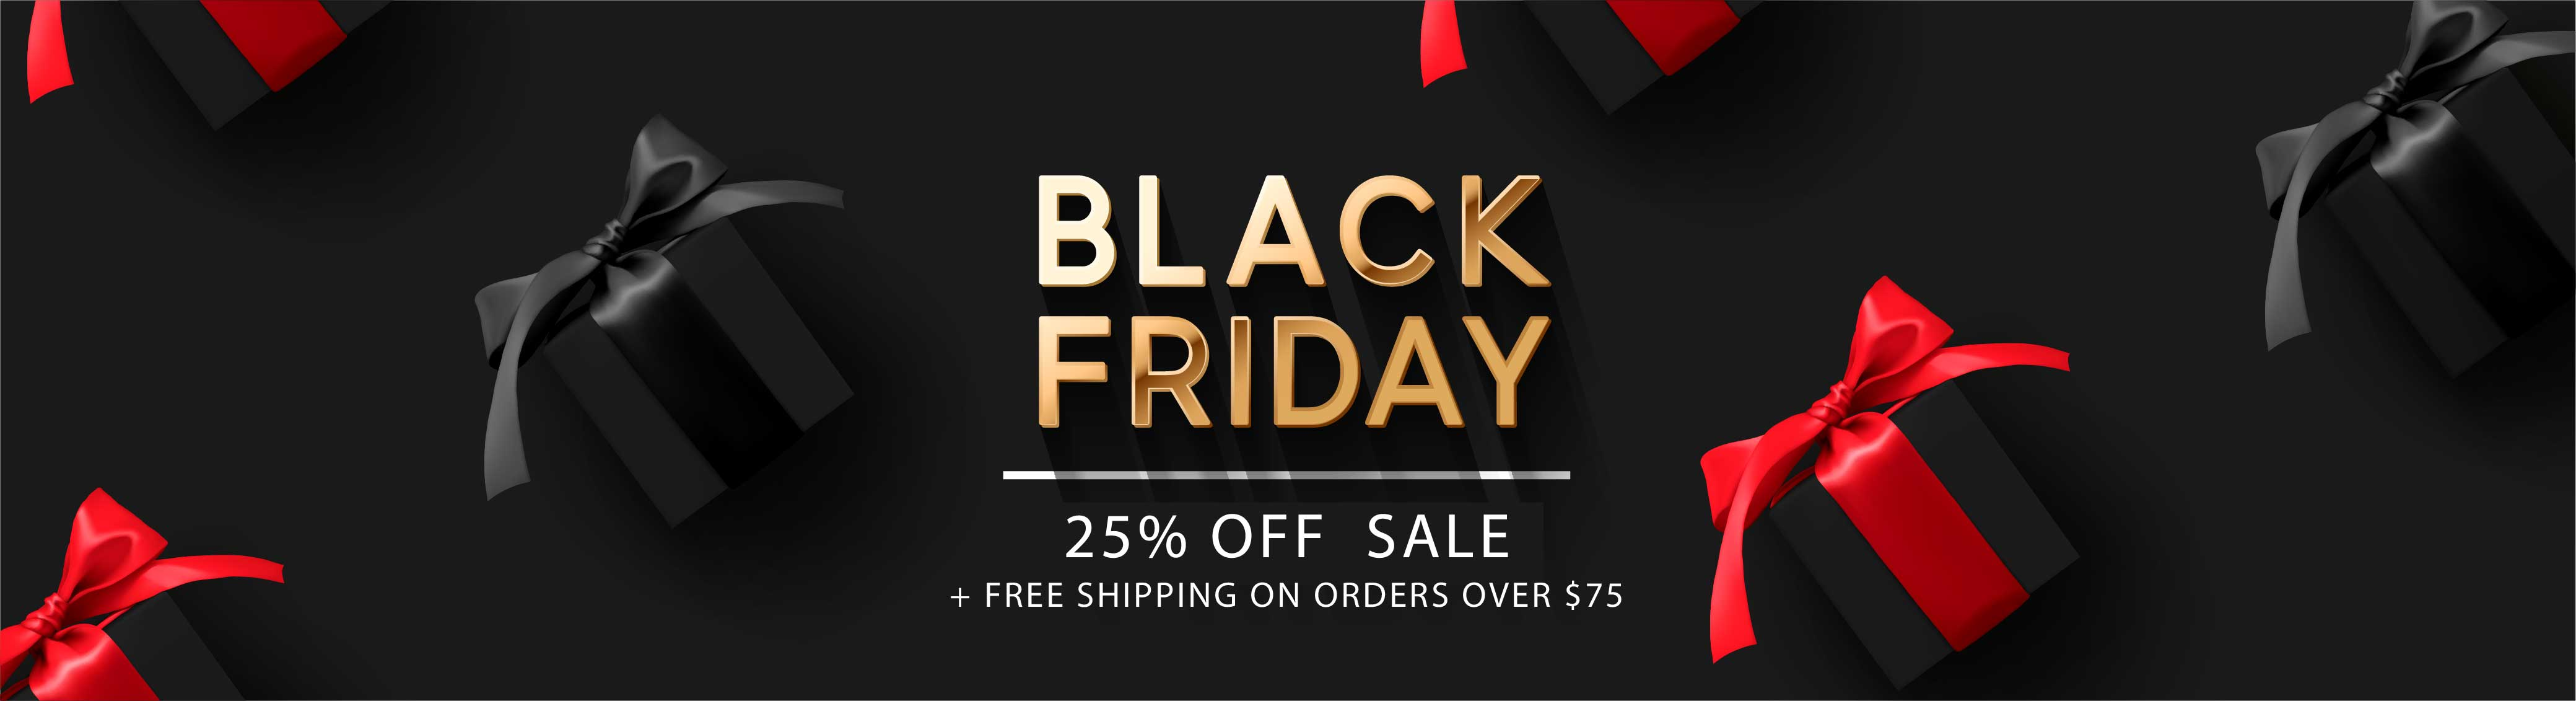 black-friday-25-off-sale-smaller.jpg